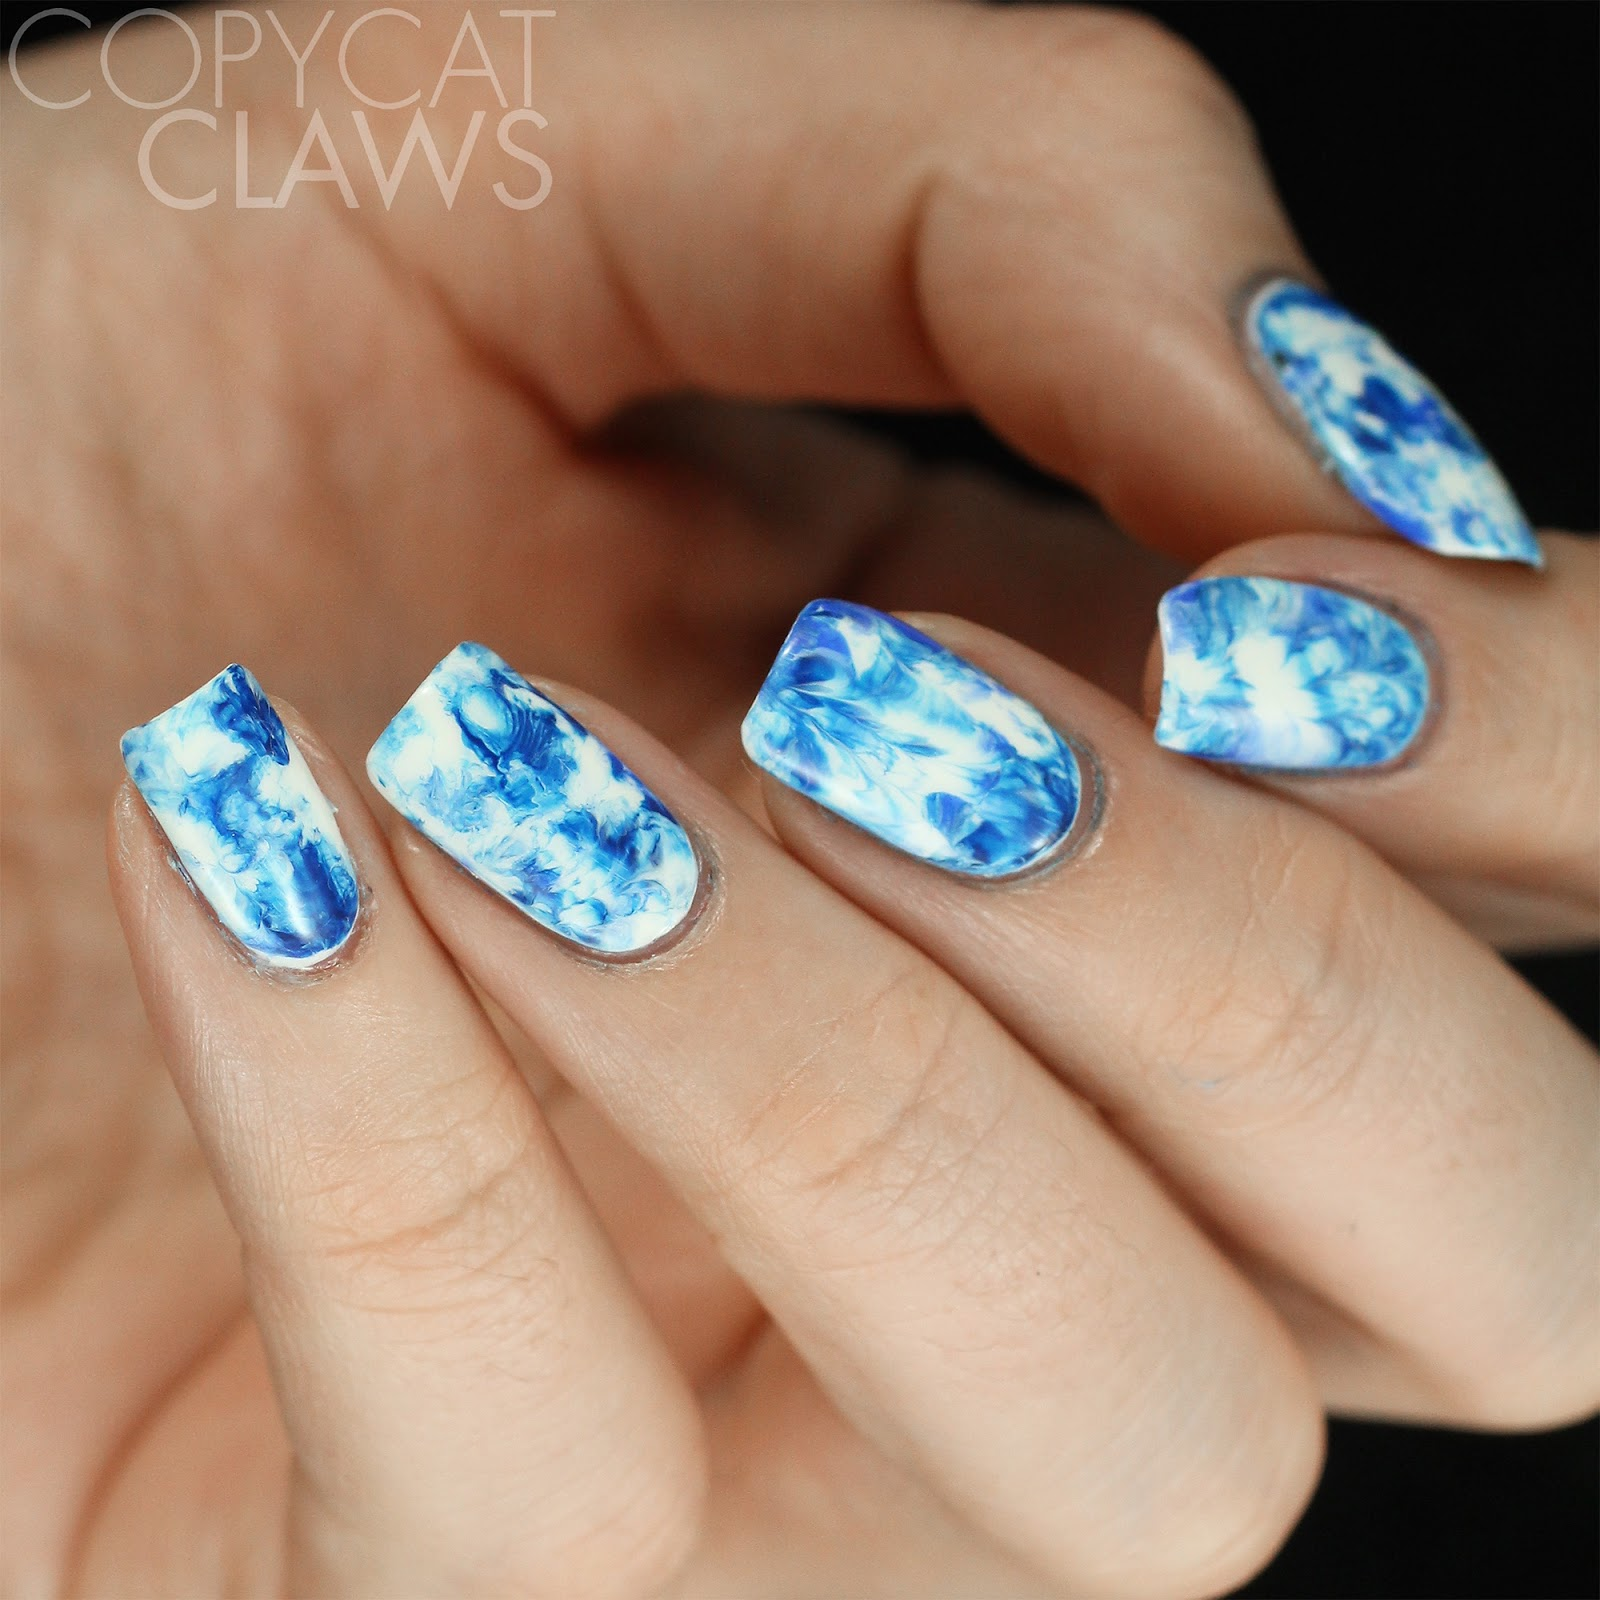 Copycat Claws Blue Color Block Nail Art: Copycat Claws: Nail Crazies Unite: Blue & White